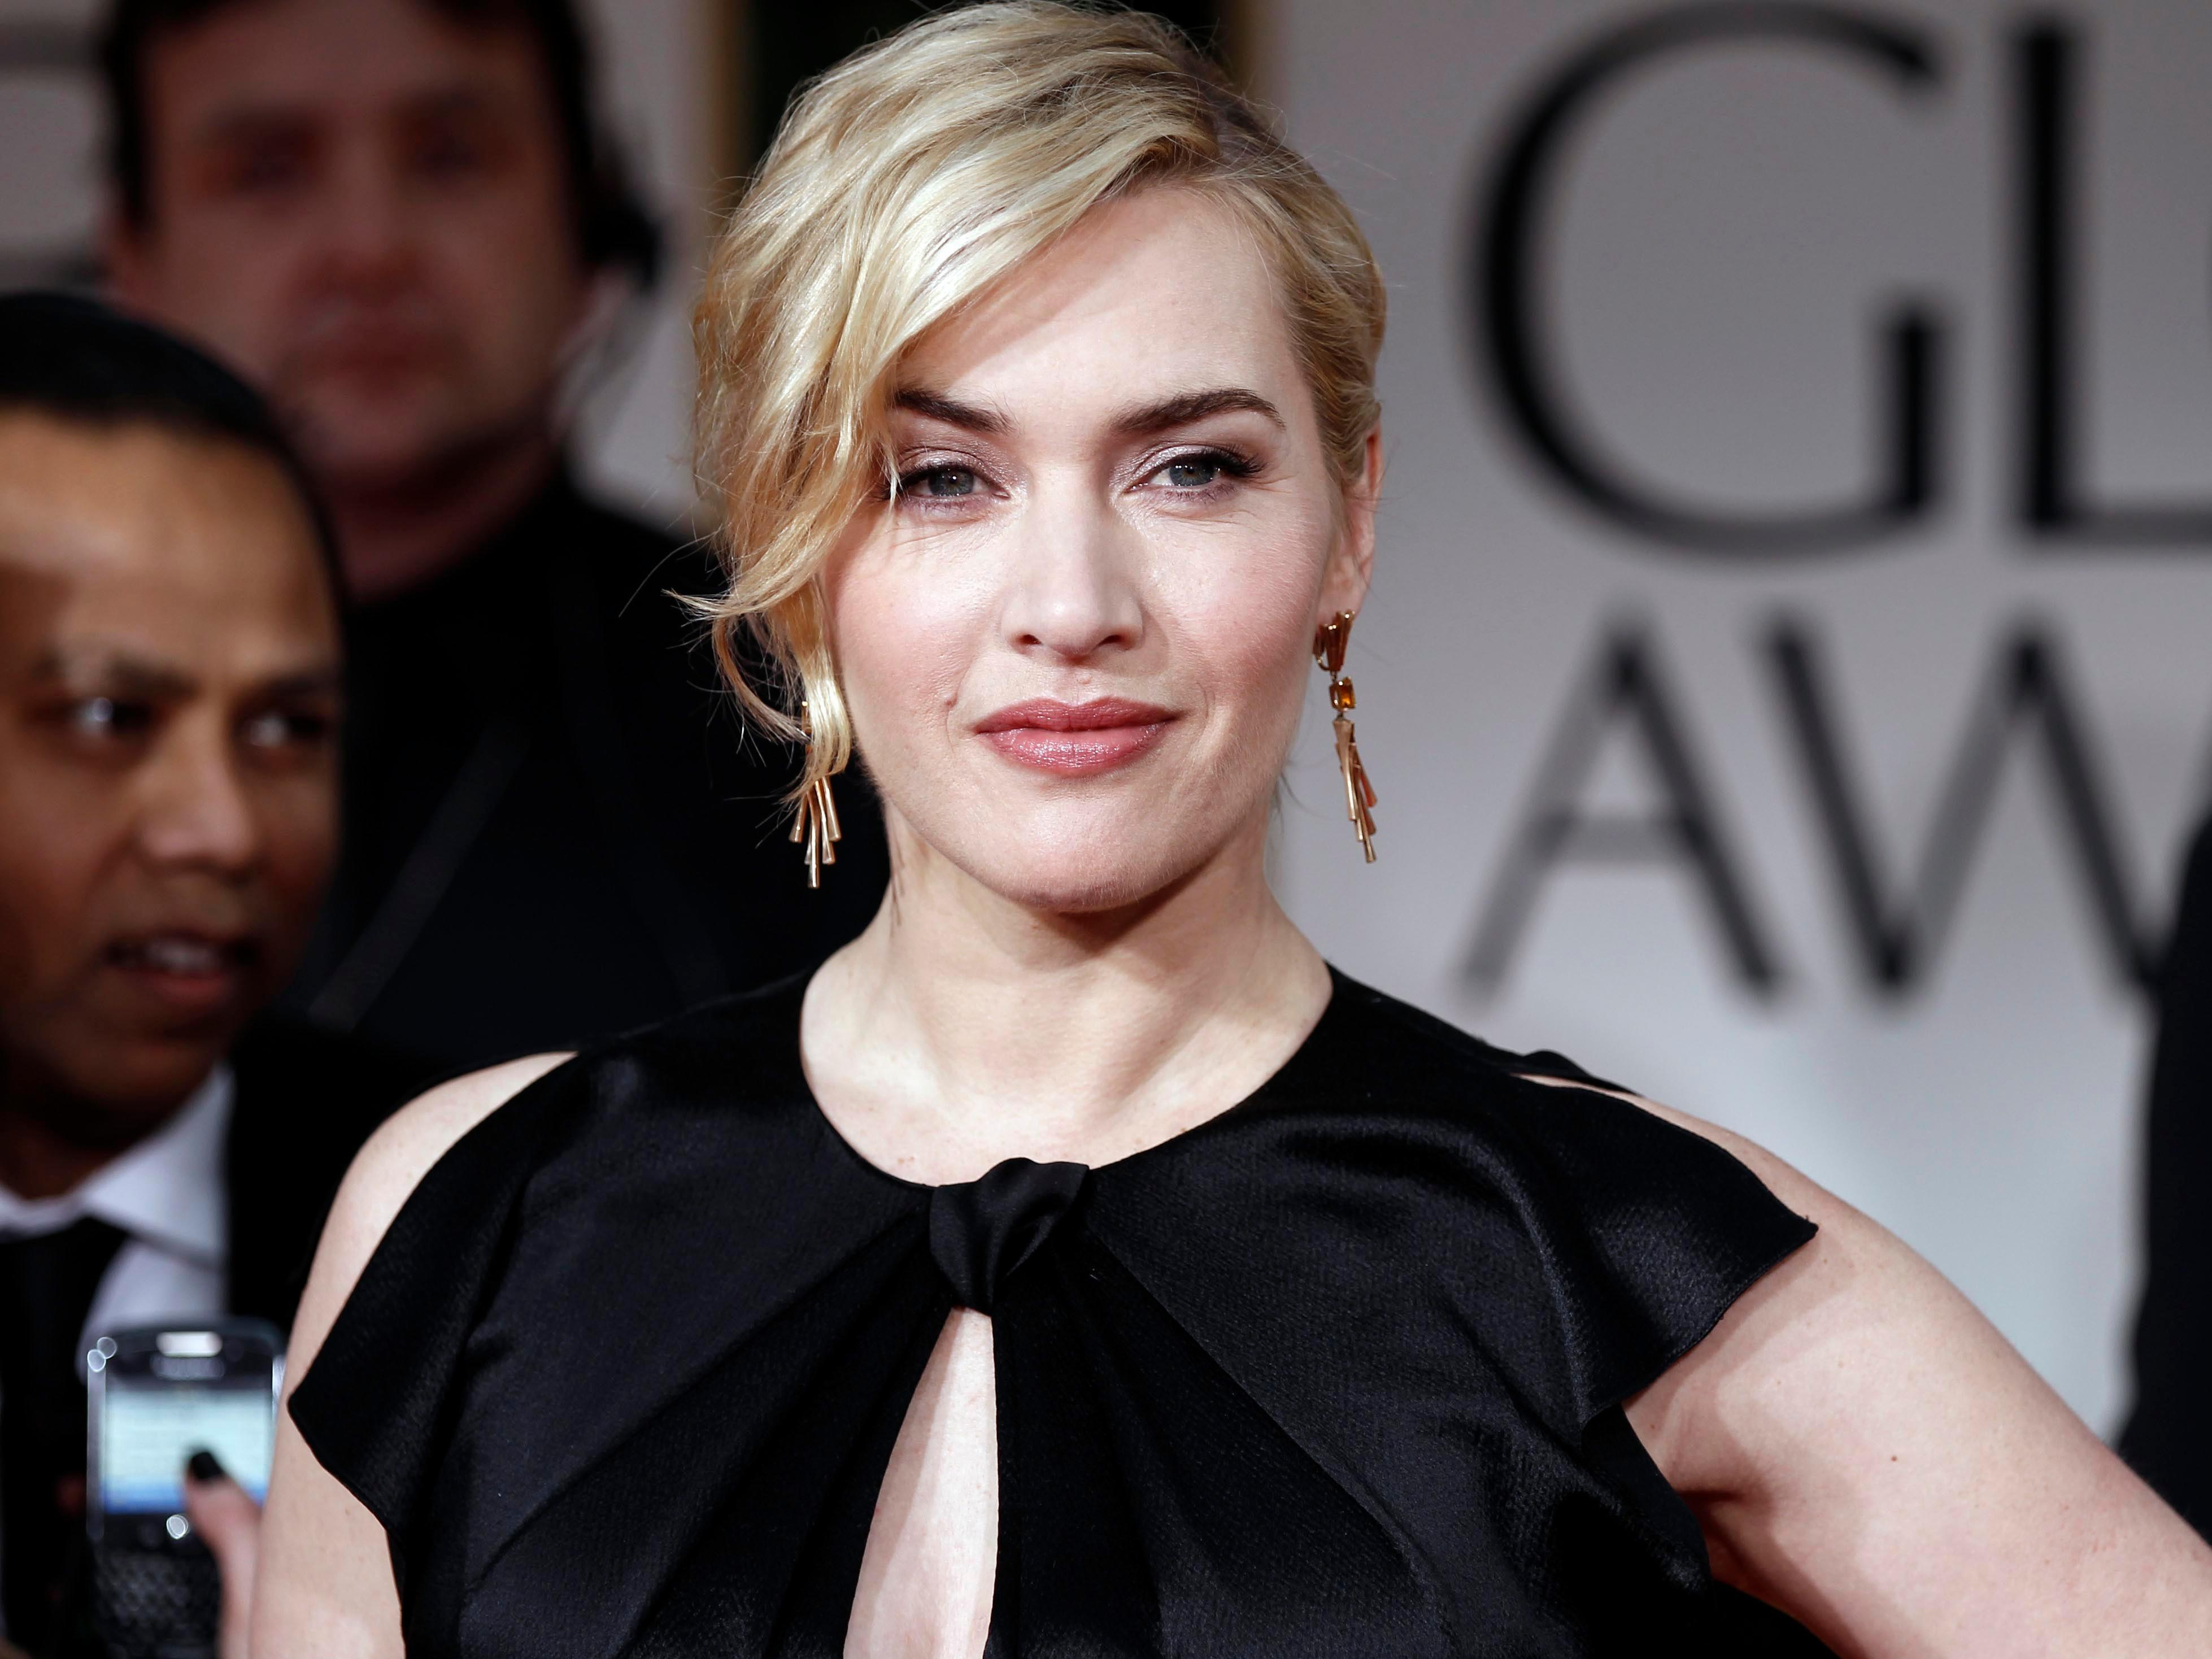 The bizarre way Kate Winslet landed the lead female role in the new Steve Jobs movie